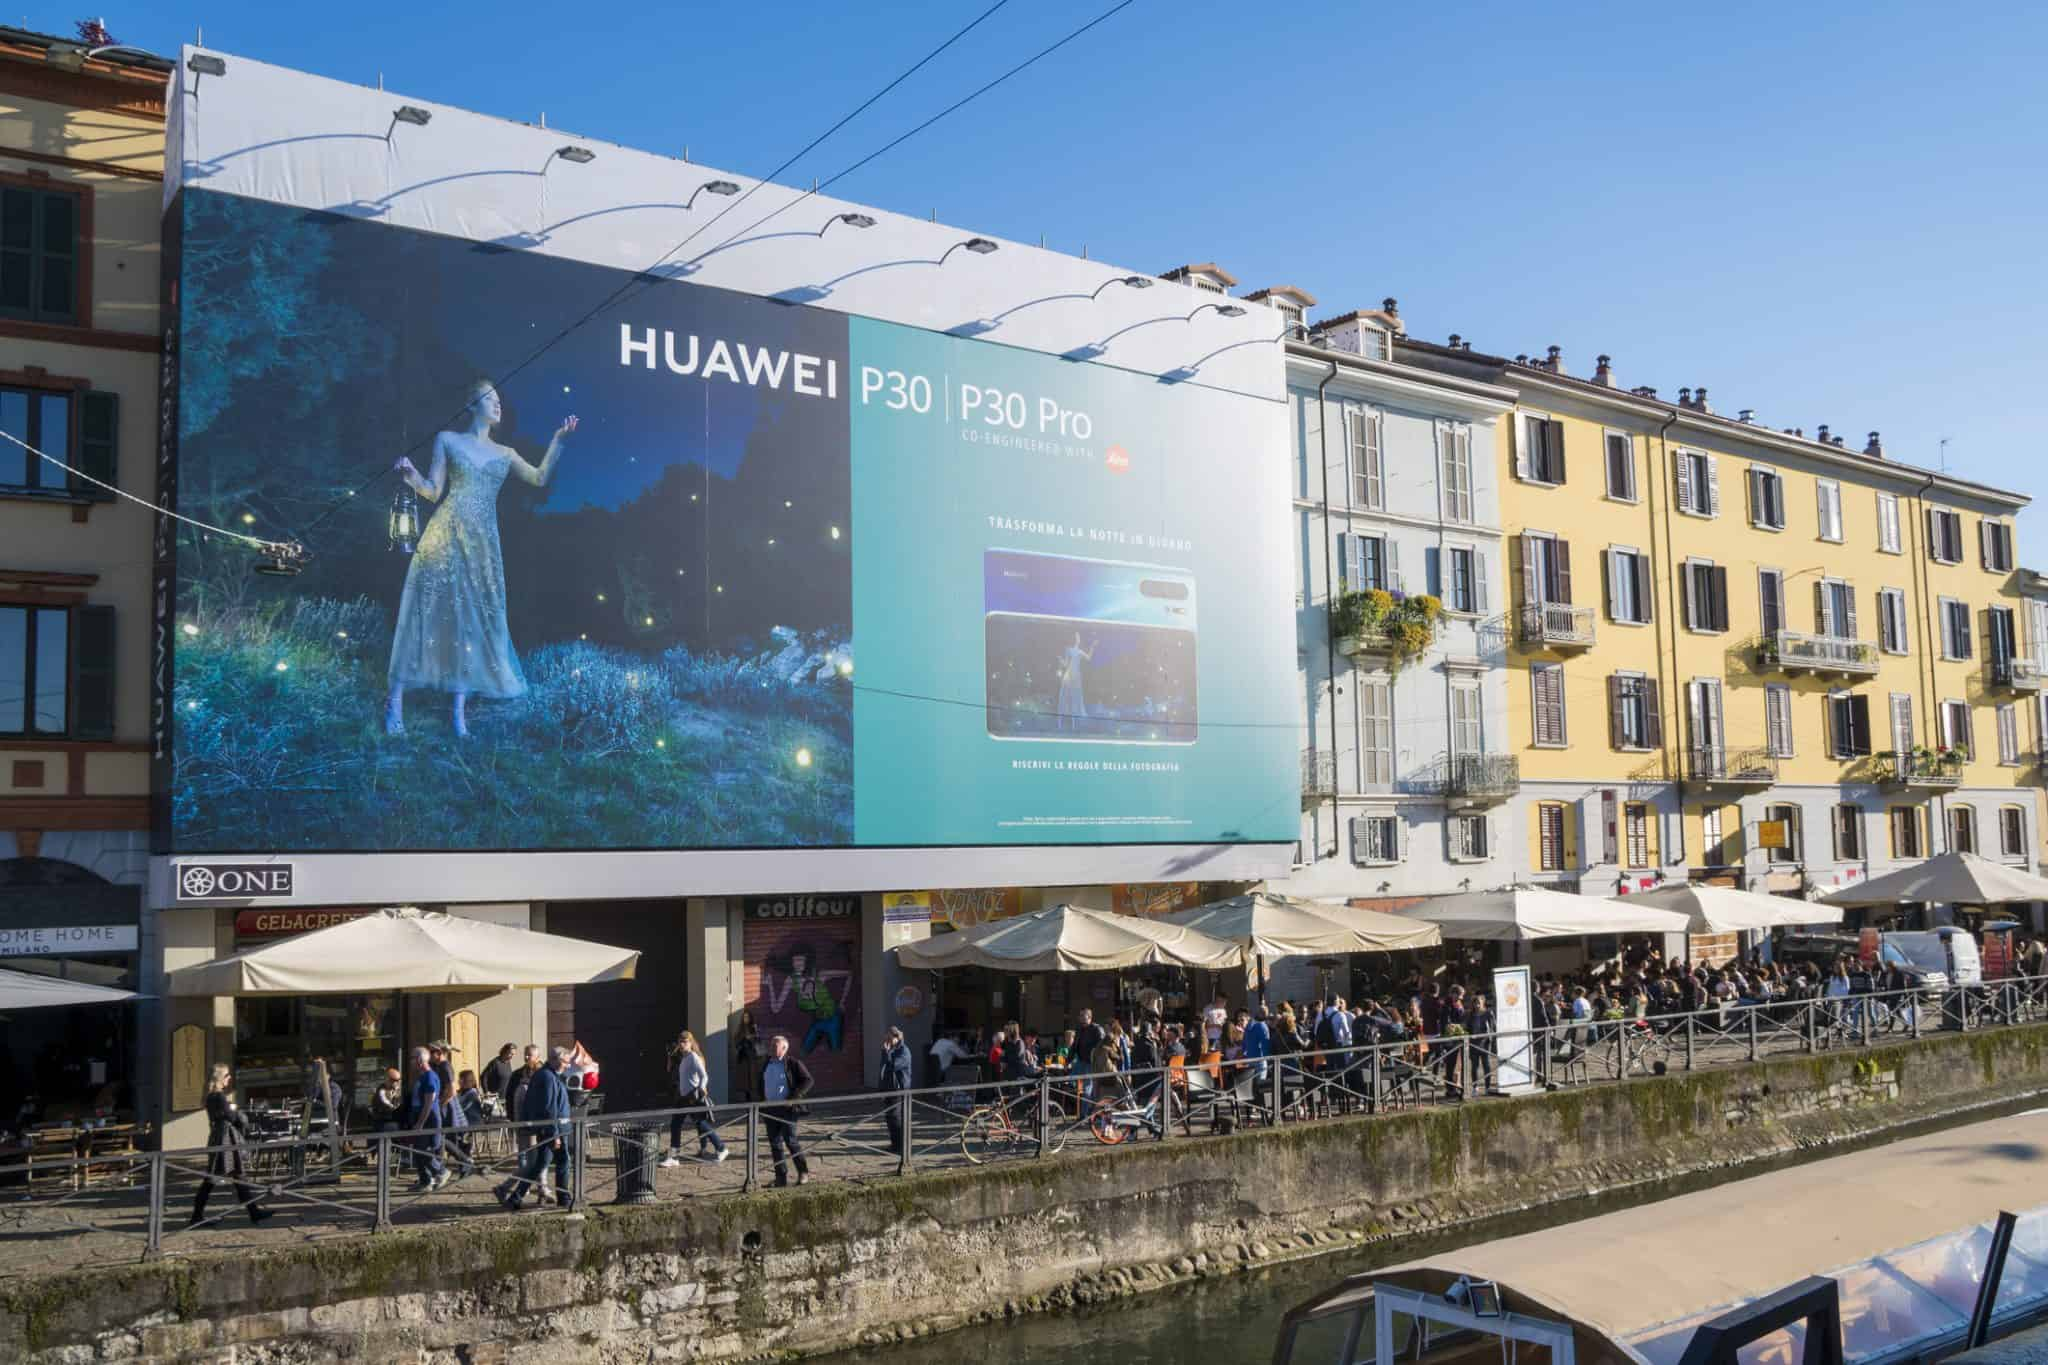 Huawei P30 Pro Huawei China VS Trump handelsverbod - Android Q